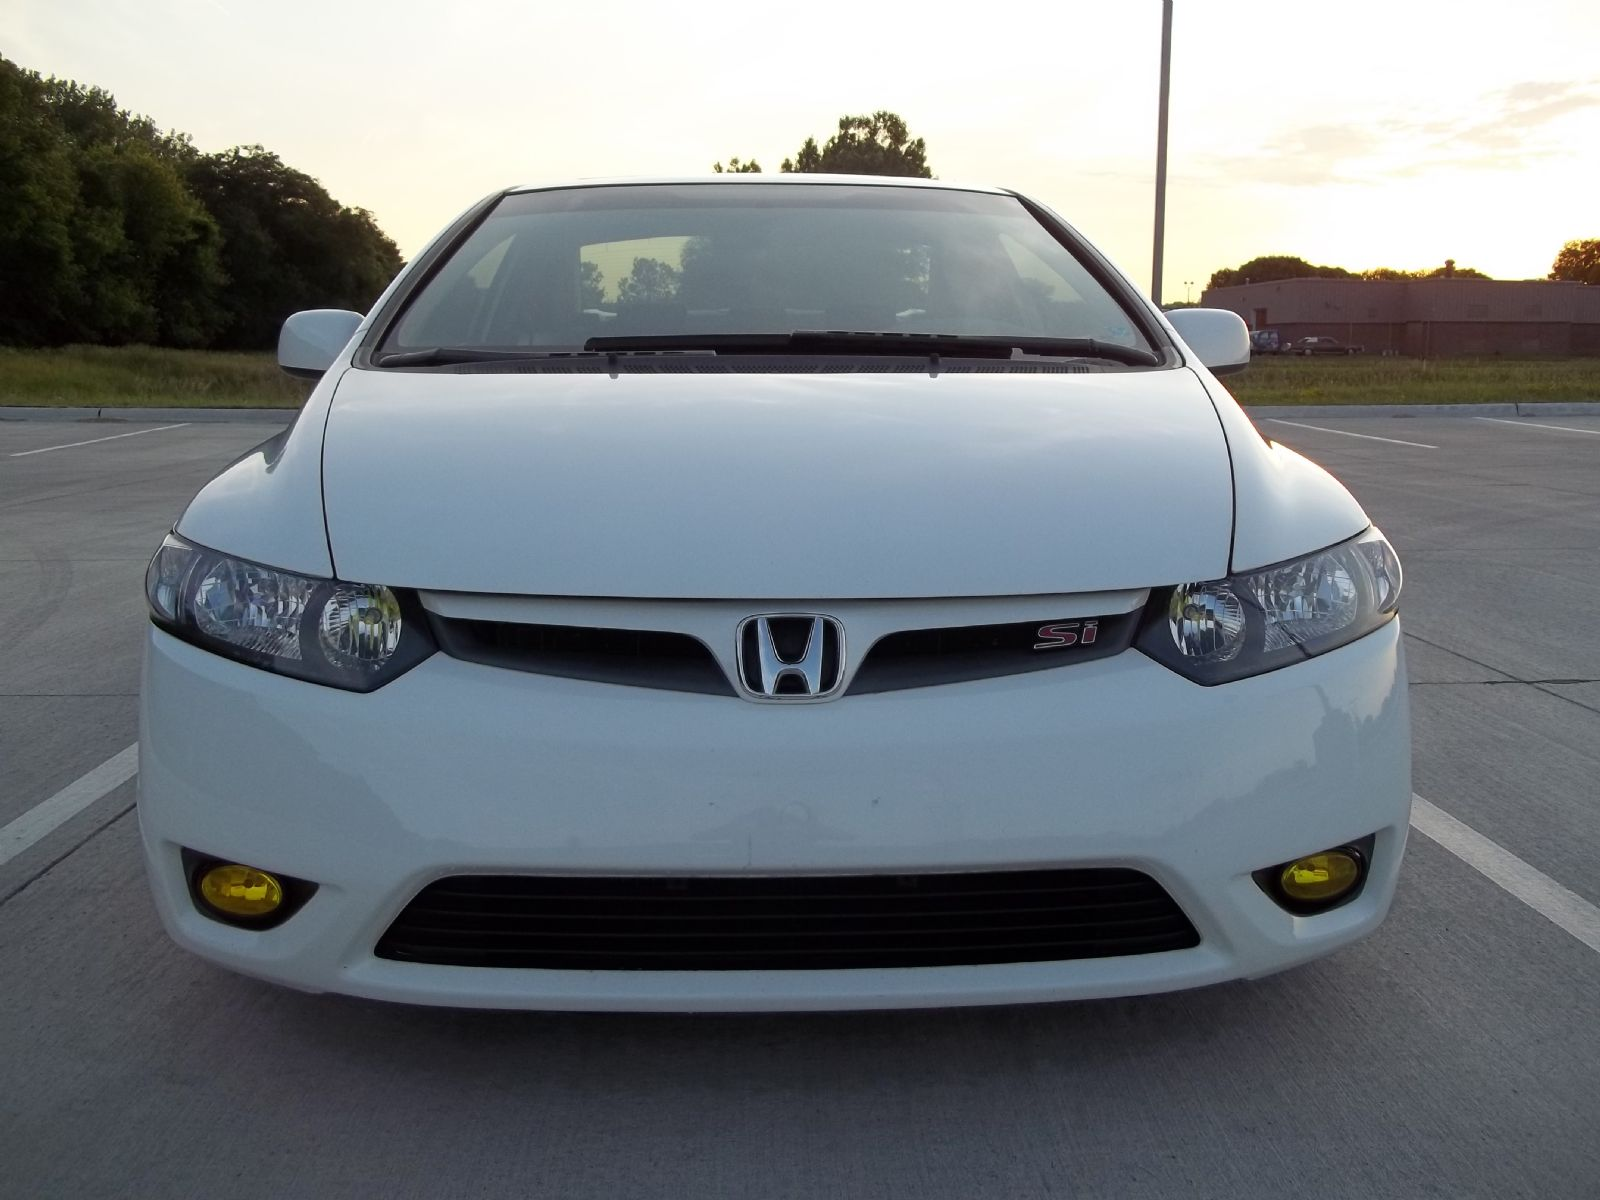 2007 honda fg2 civic si for sale west des moines iowa. Black Bedroom Furniture Sets. Home Design Ideas